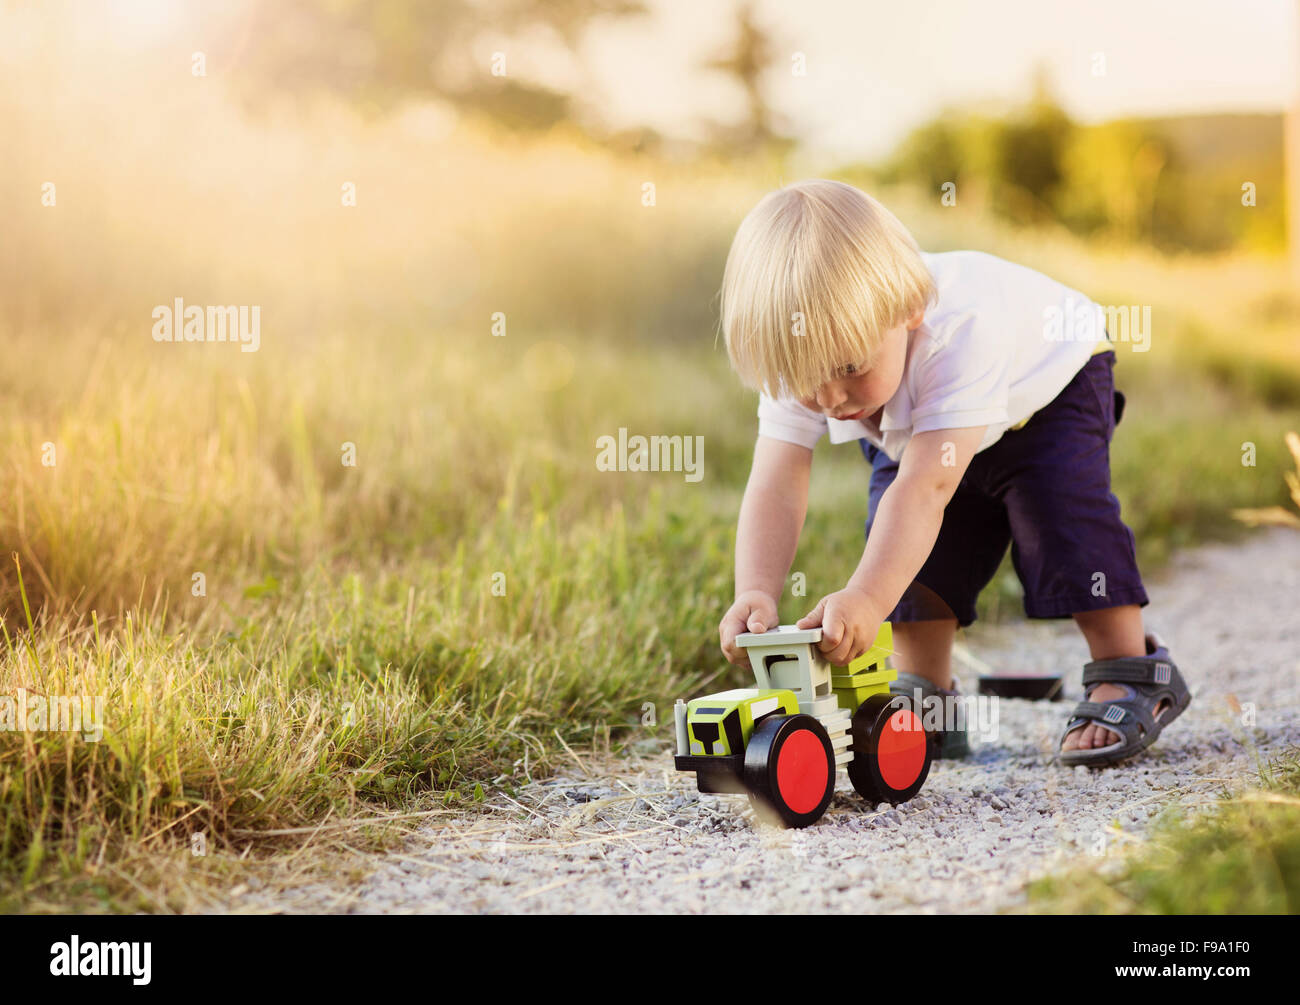 Little boy playing with toy tractor on countryside road - Stock Image